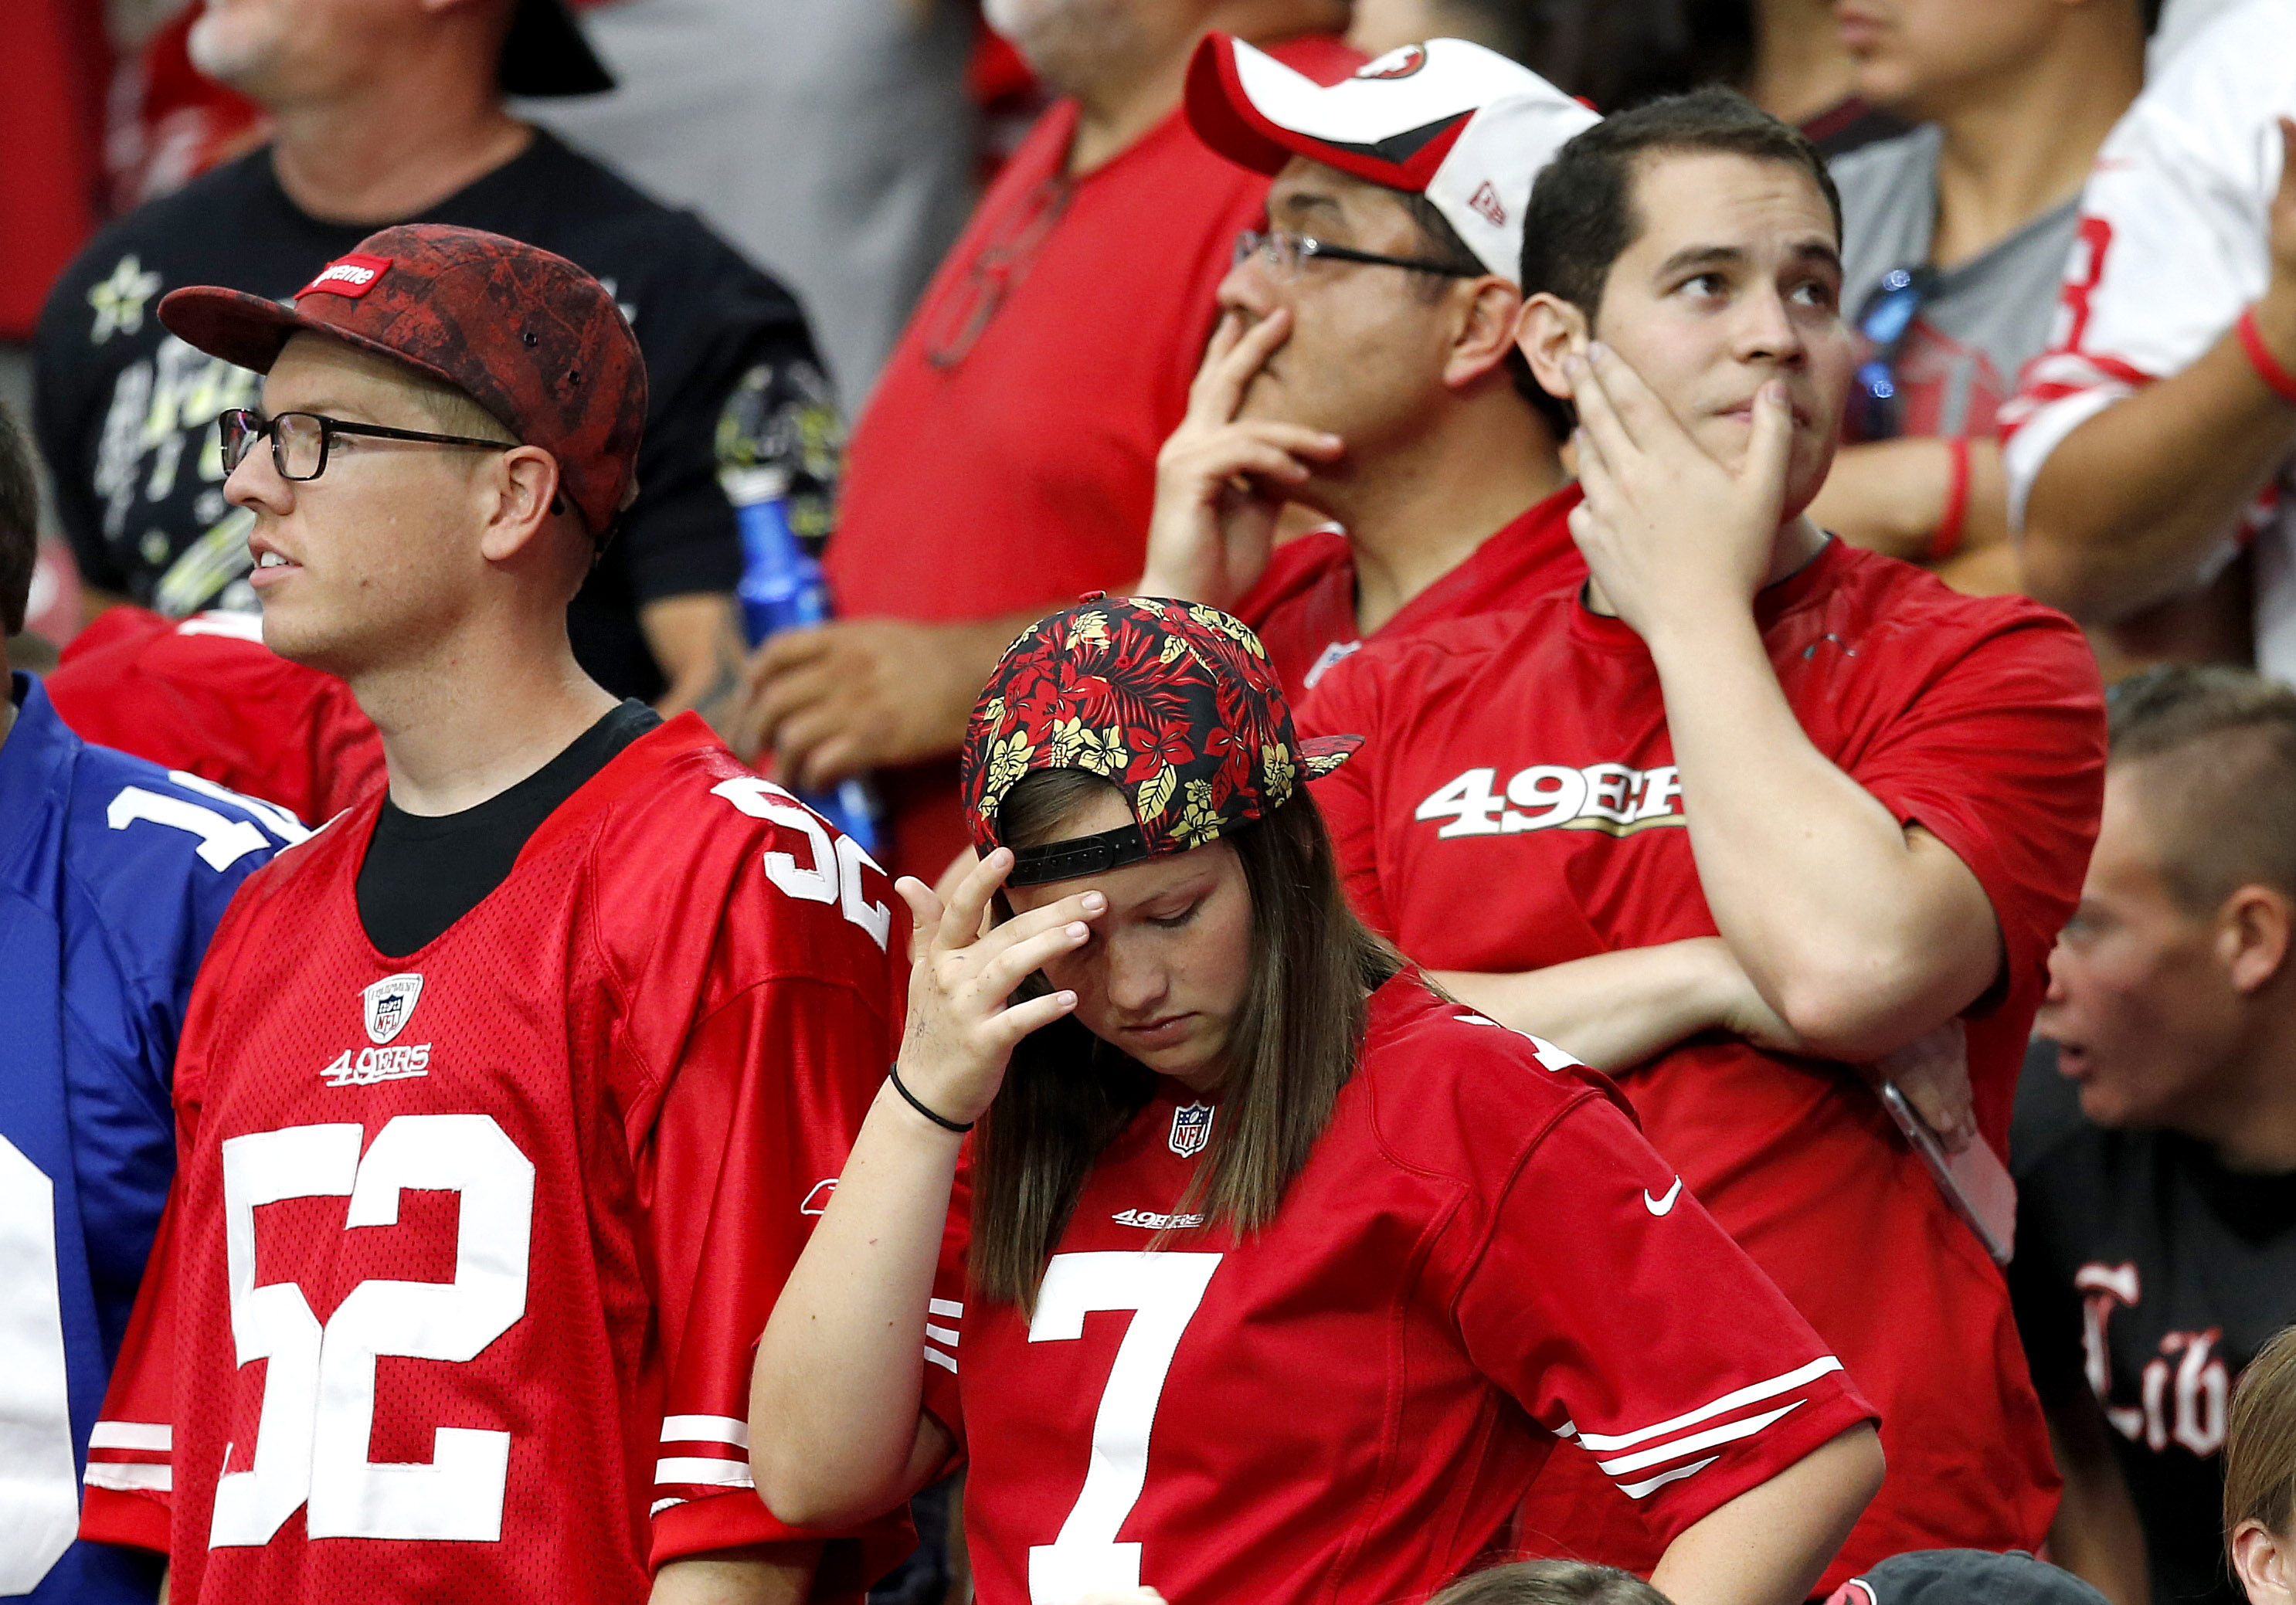 San Francisco 49ers fans react during the first half of an NFL football game against the Arizona Cardinals, Sunday, Sept. 27, 2015, in Glendale, Ariz.  (AP Photo/Ross D. Franklin)